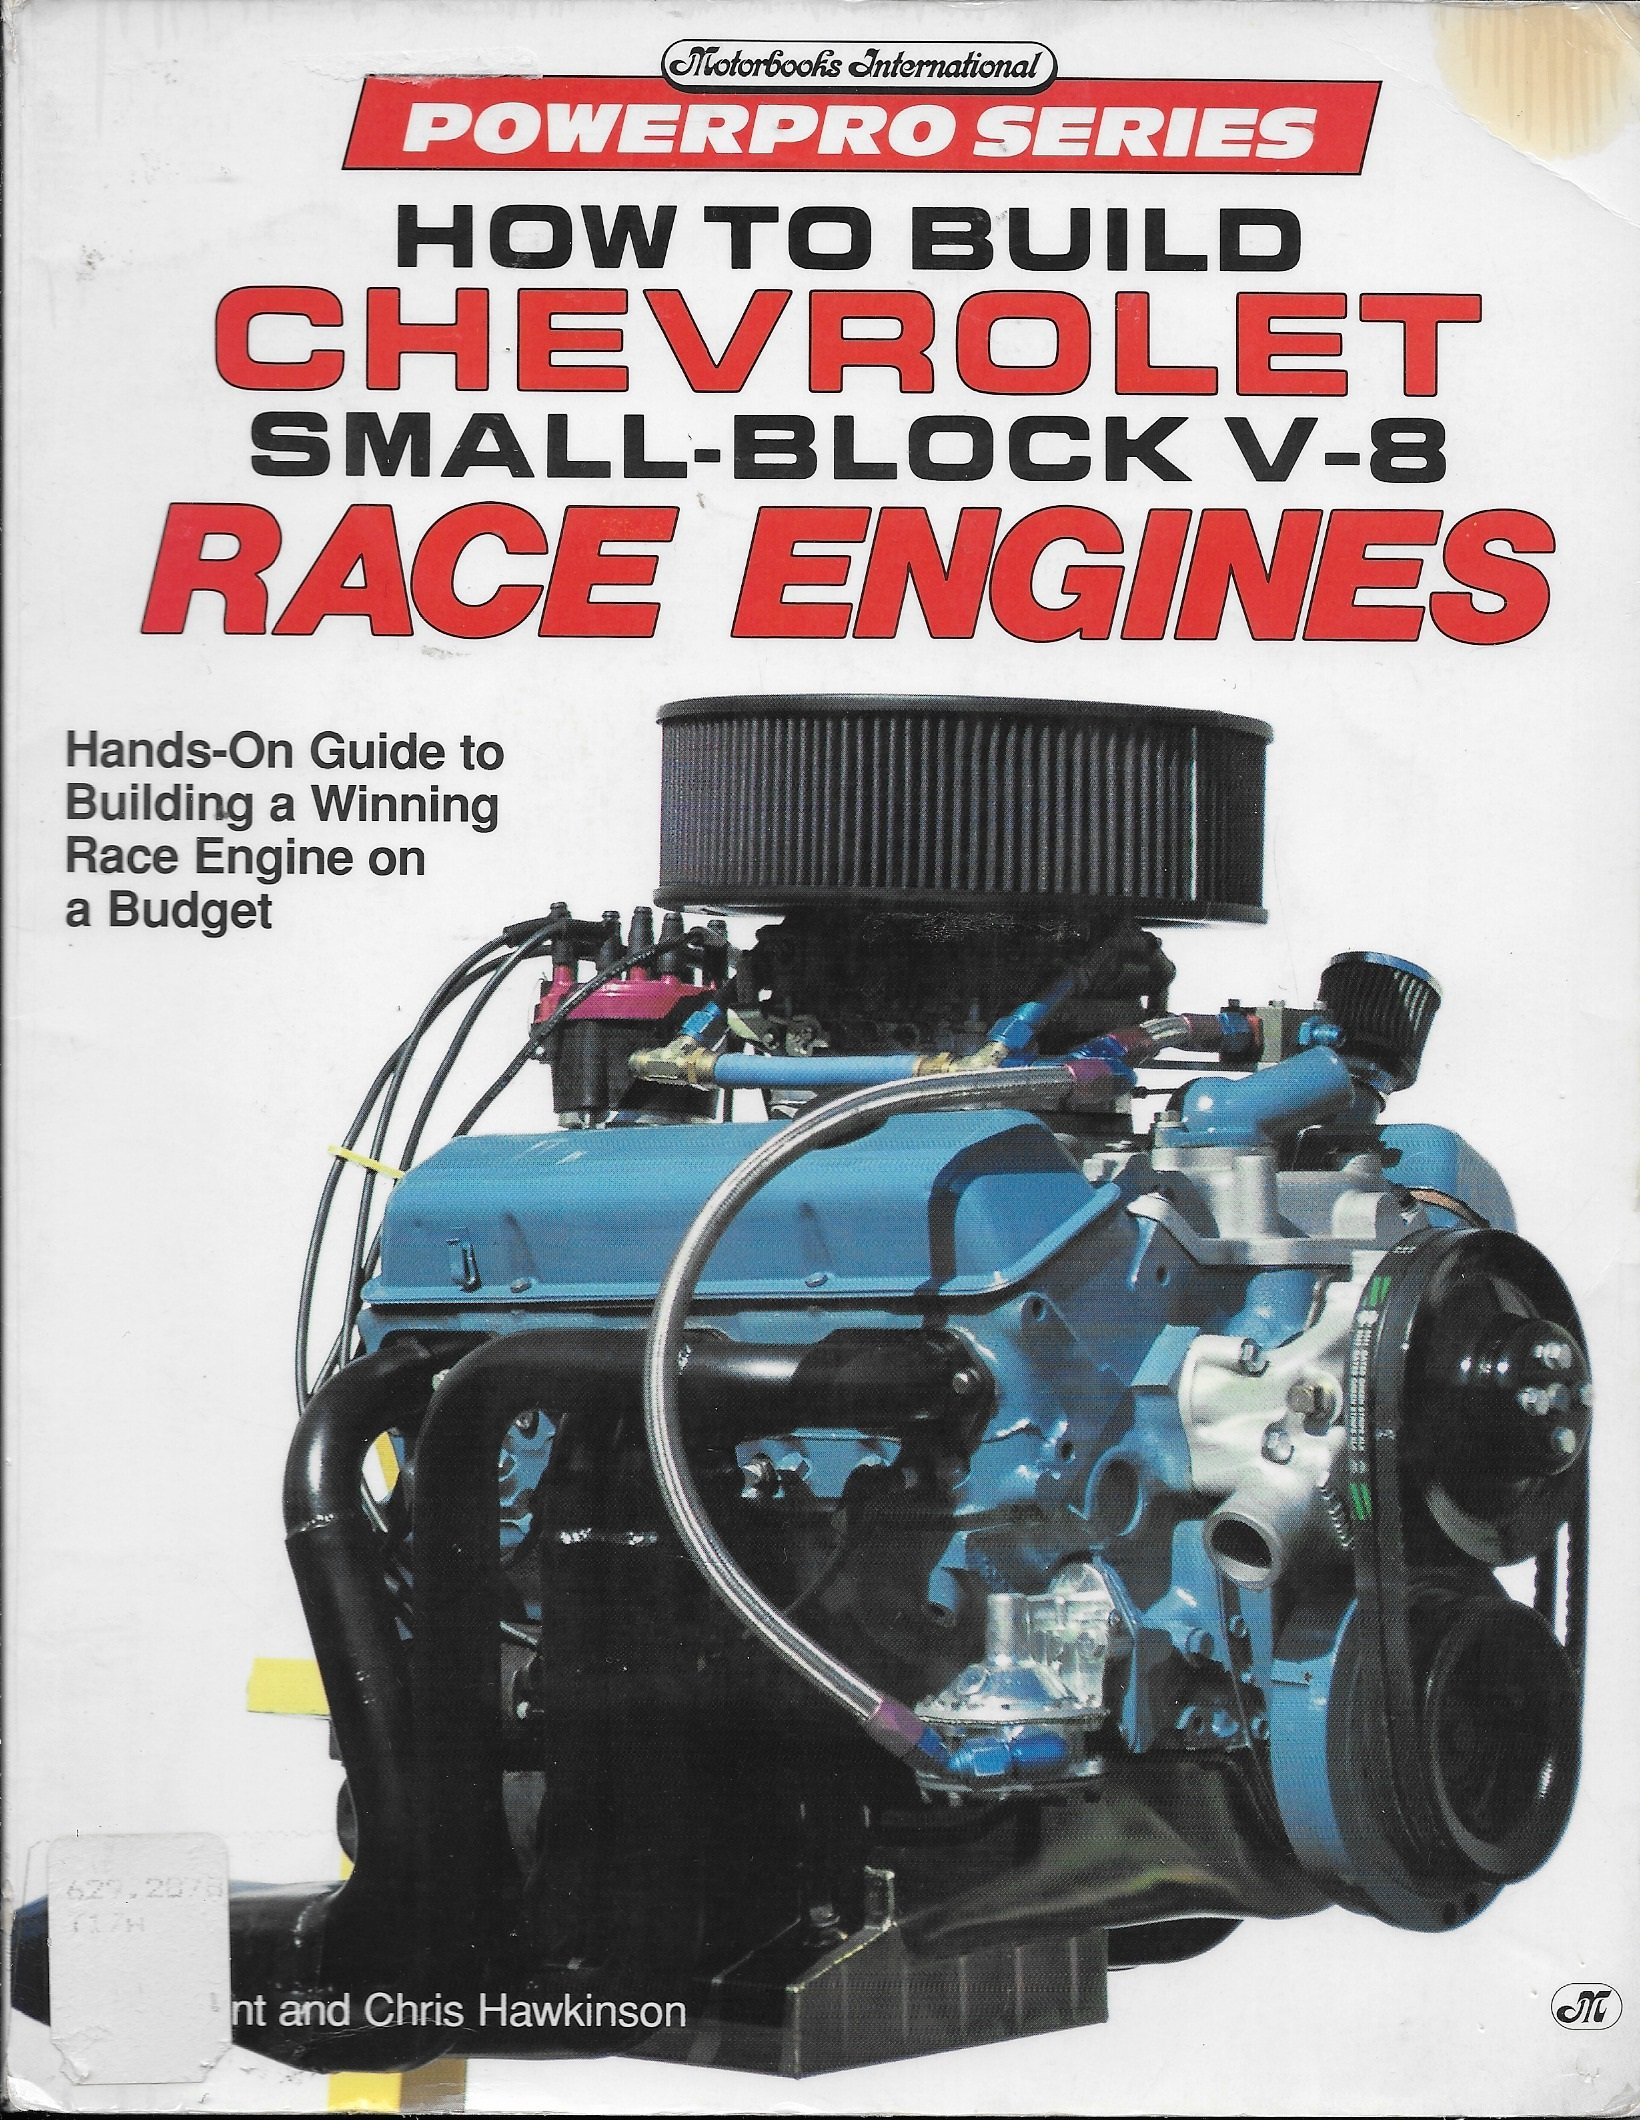 How to Build Chevrolet Small Block V8 Race Engines (Motorbooks International Powerpro Series)